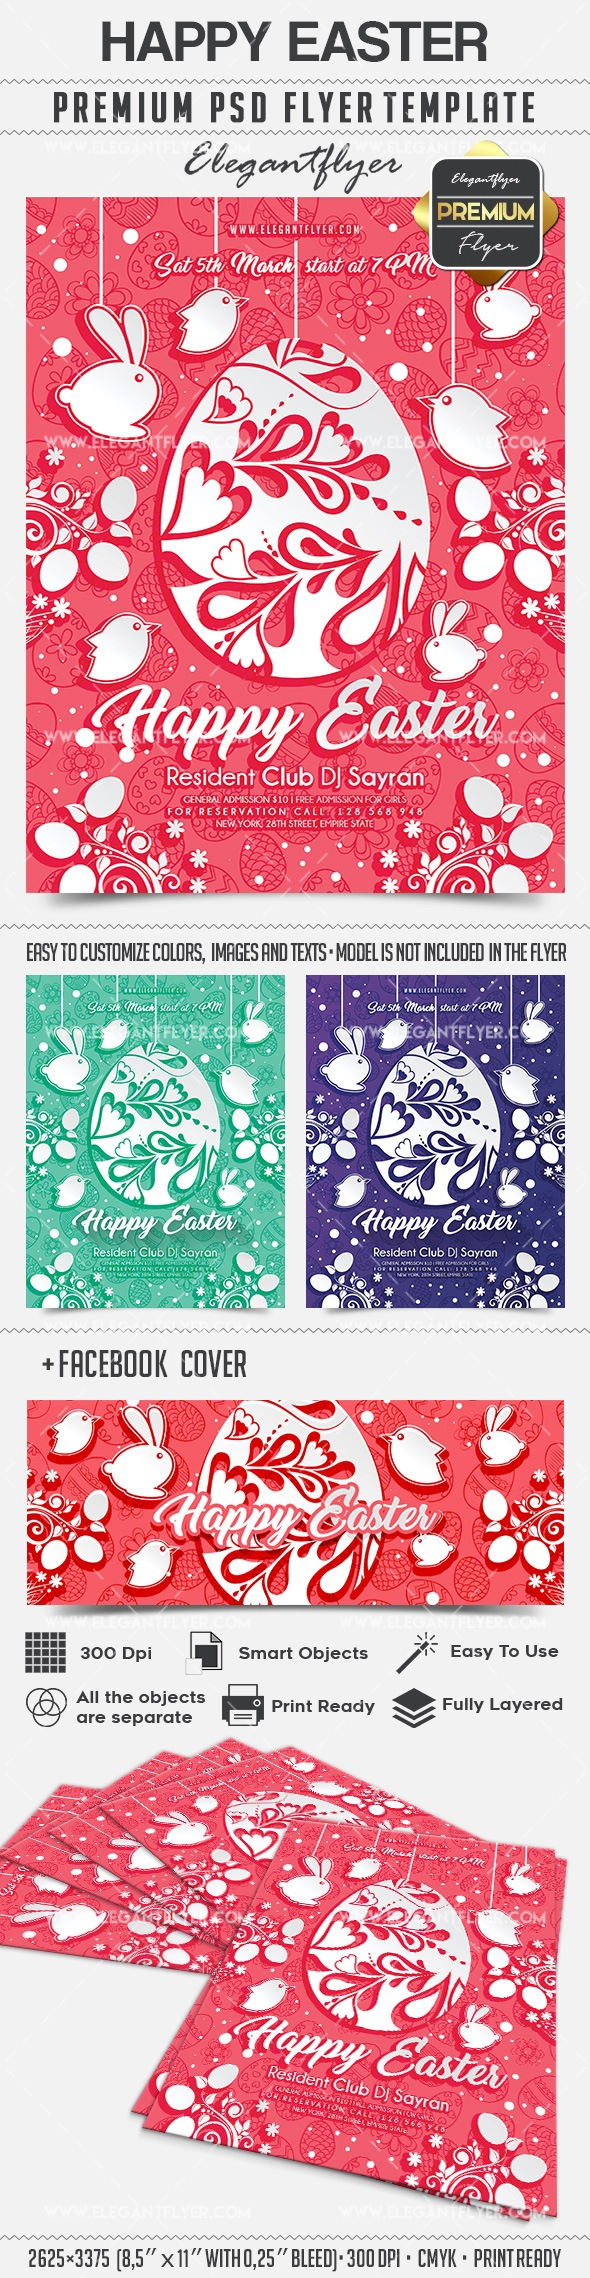 Happy Easter Greetings PSD Template